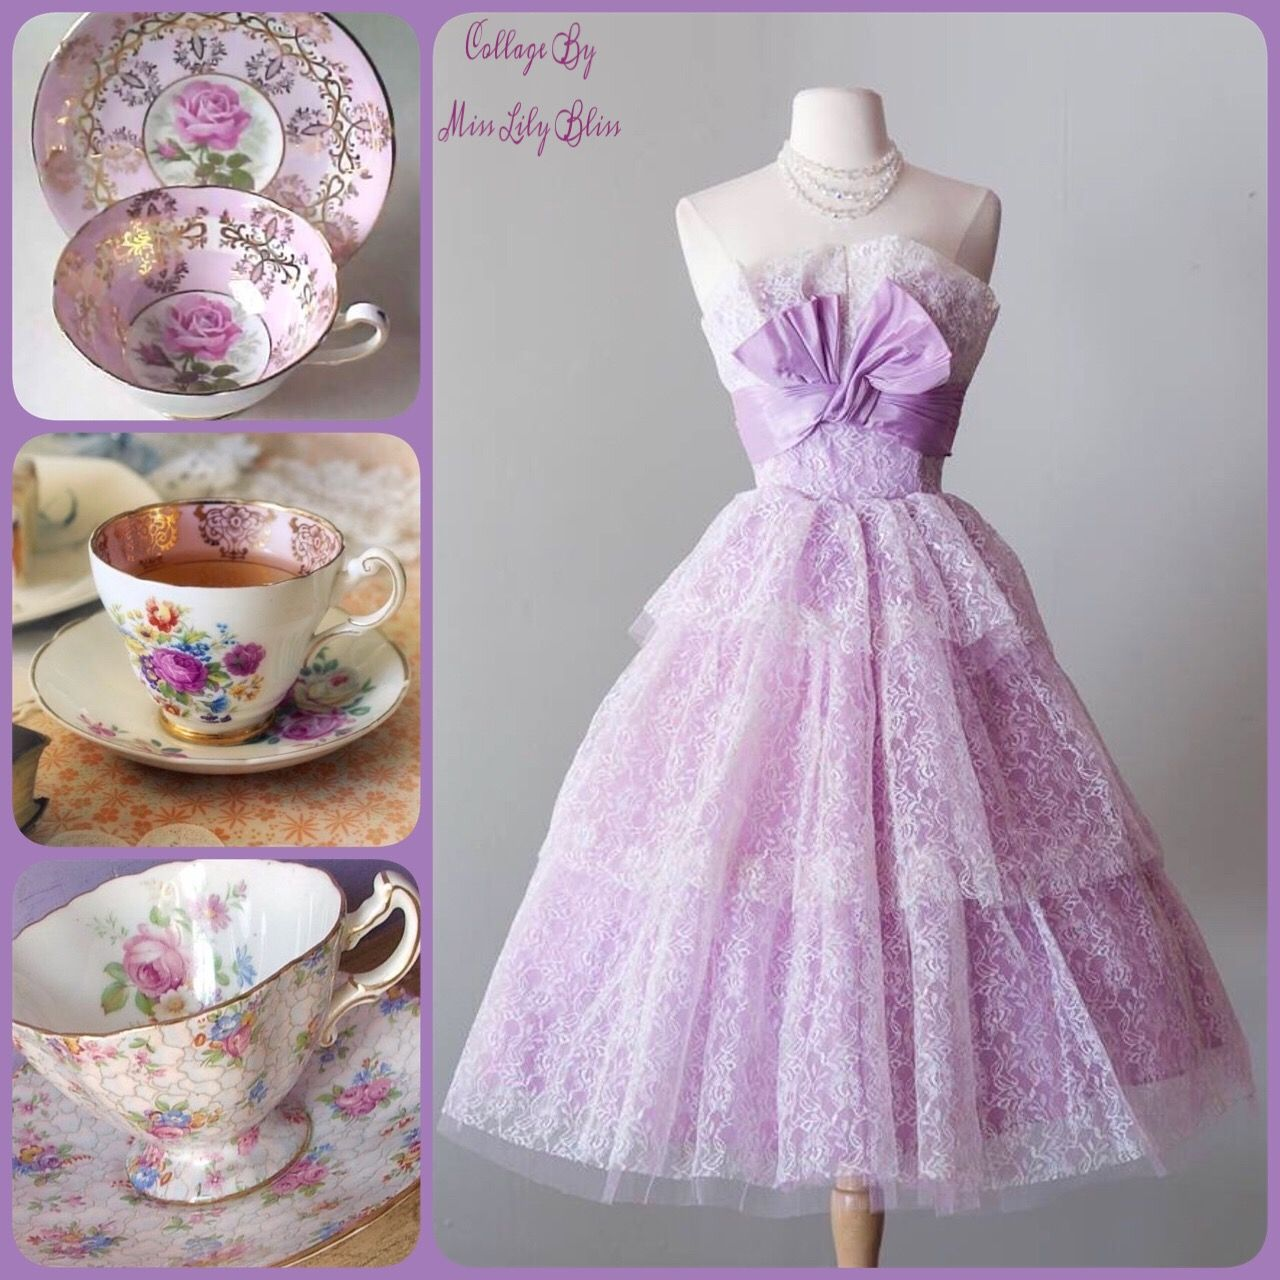 Collage By Miss Lily Bliss Tea dress, Ballroom gowns